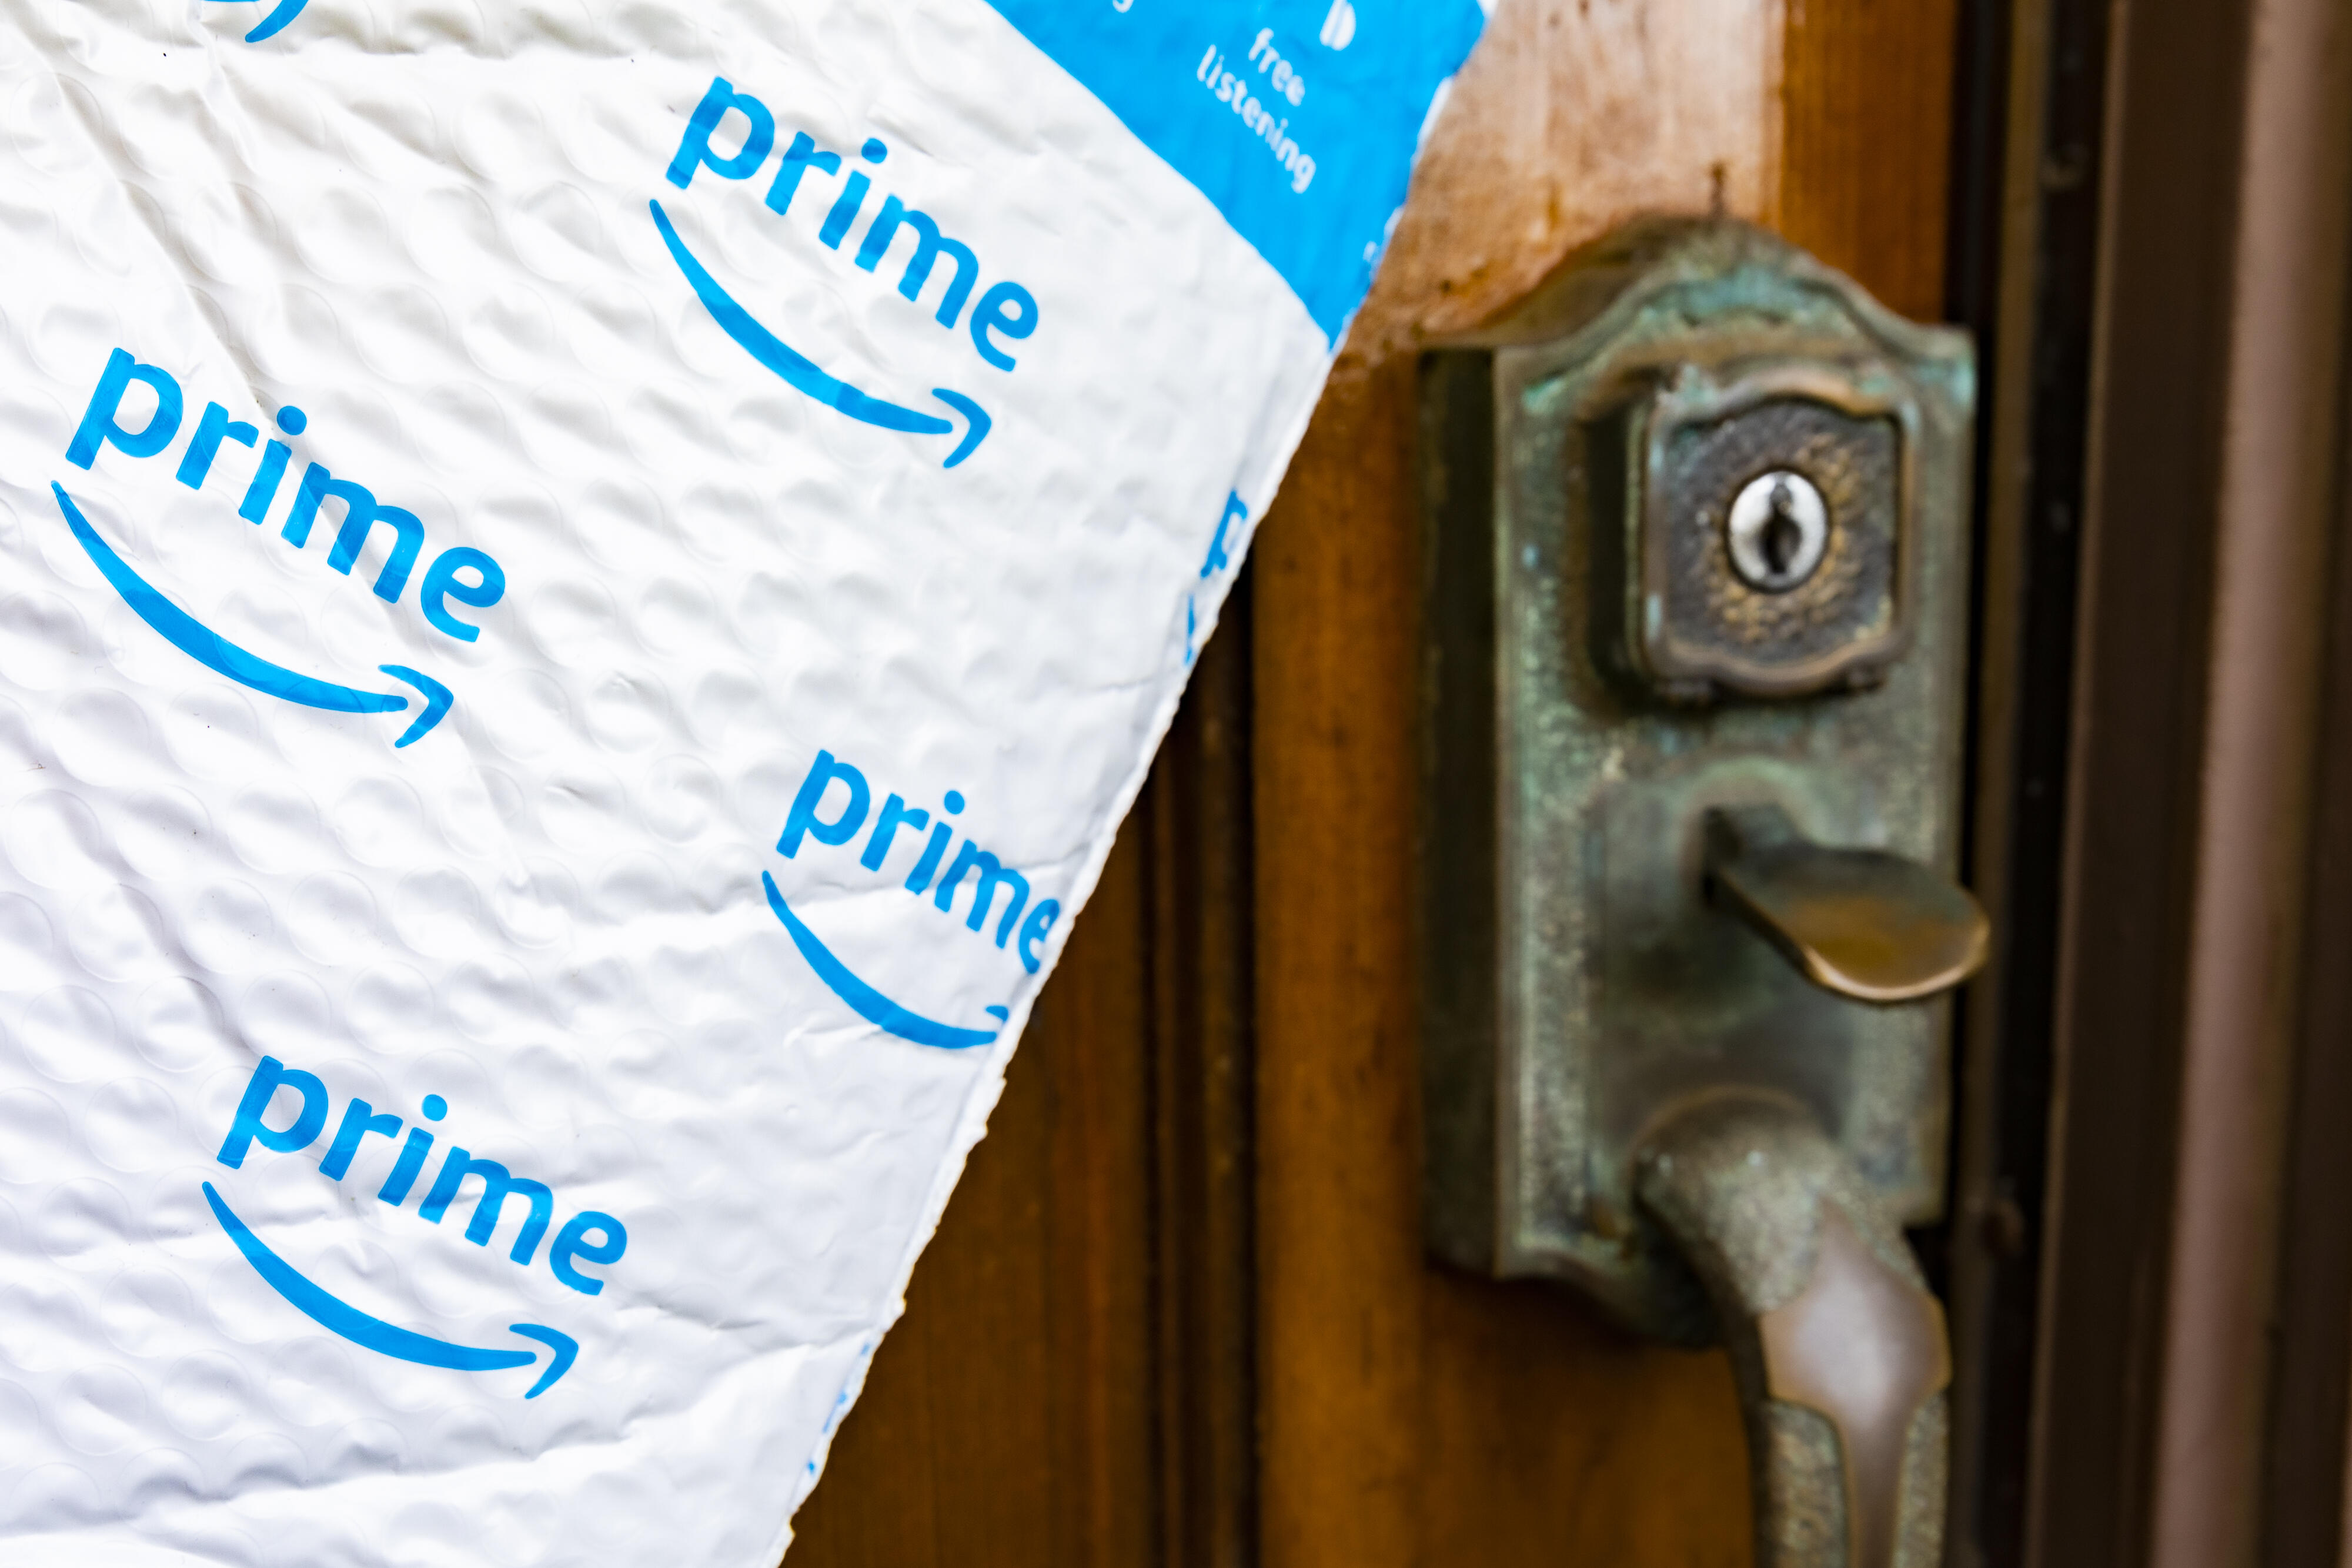 amazon-delivery-online-ordering-shipping-7099